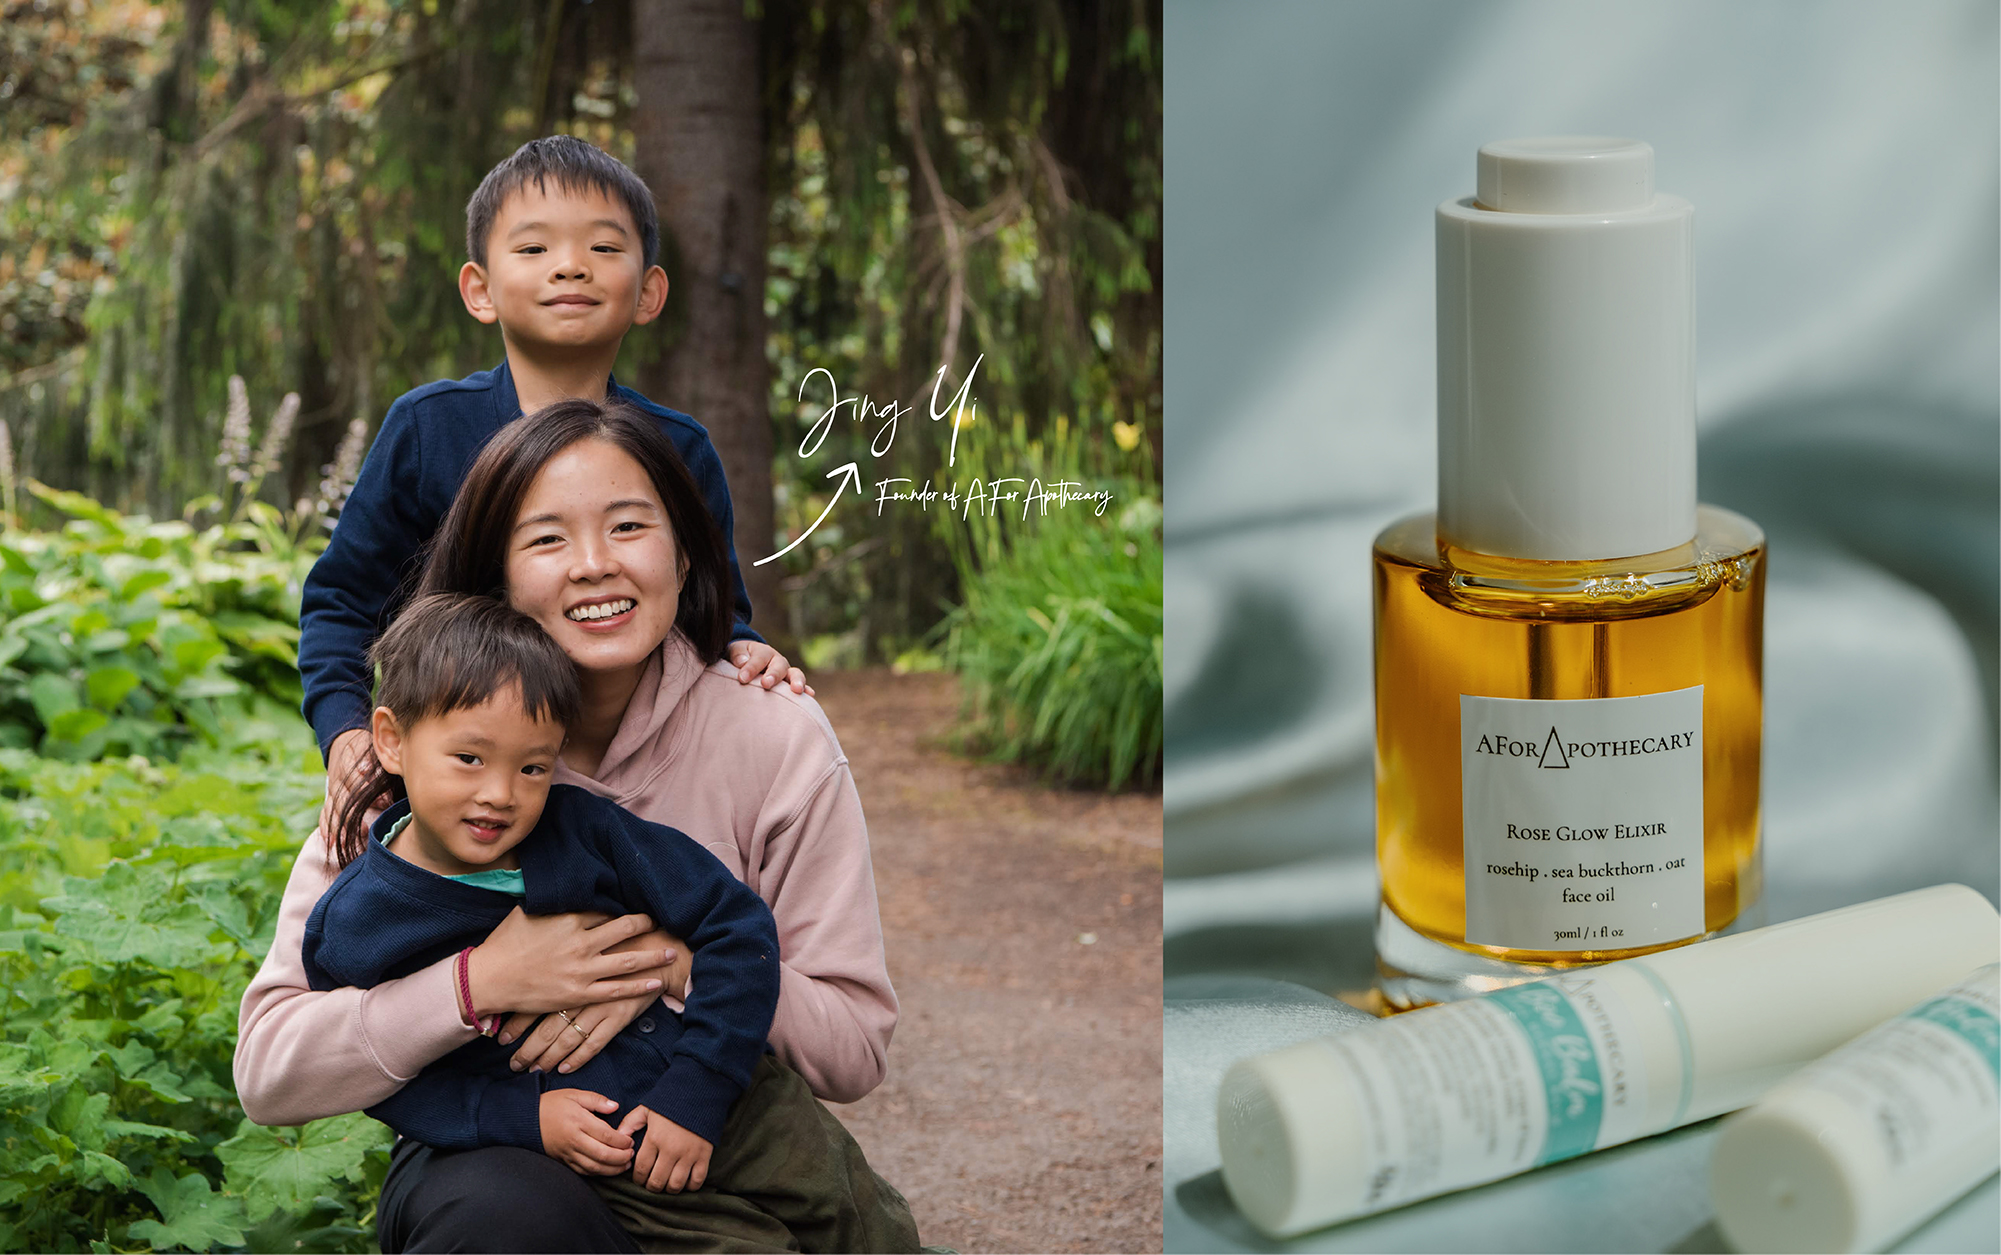 Putting The Clean In Beauty: Meet Jingyi, Founder Of Local Skin Care Brand A For Apothecary